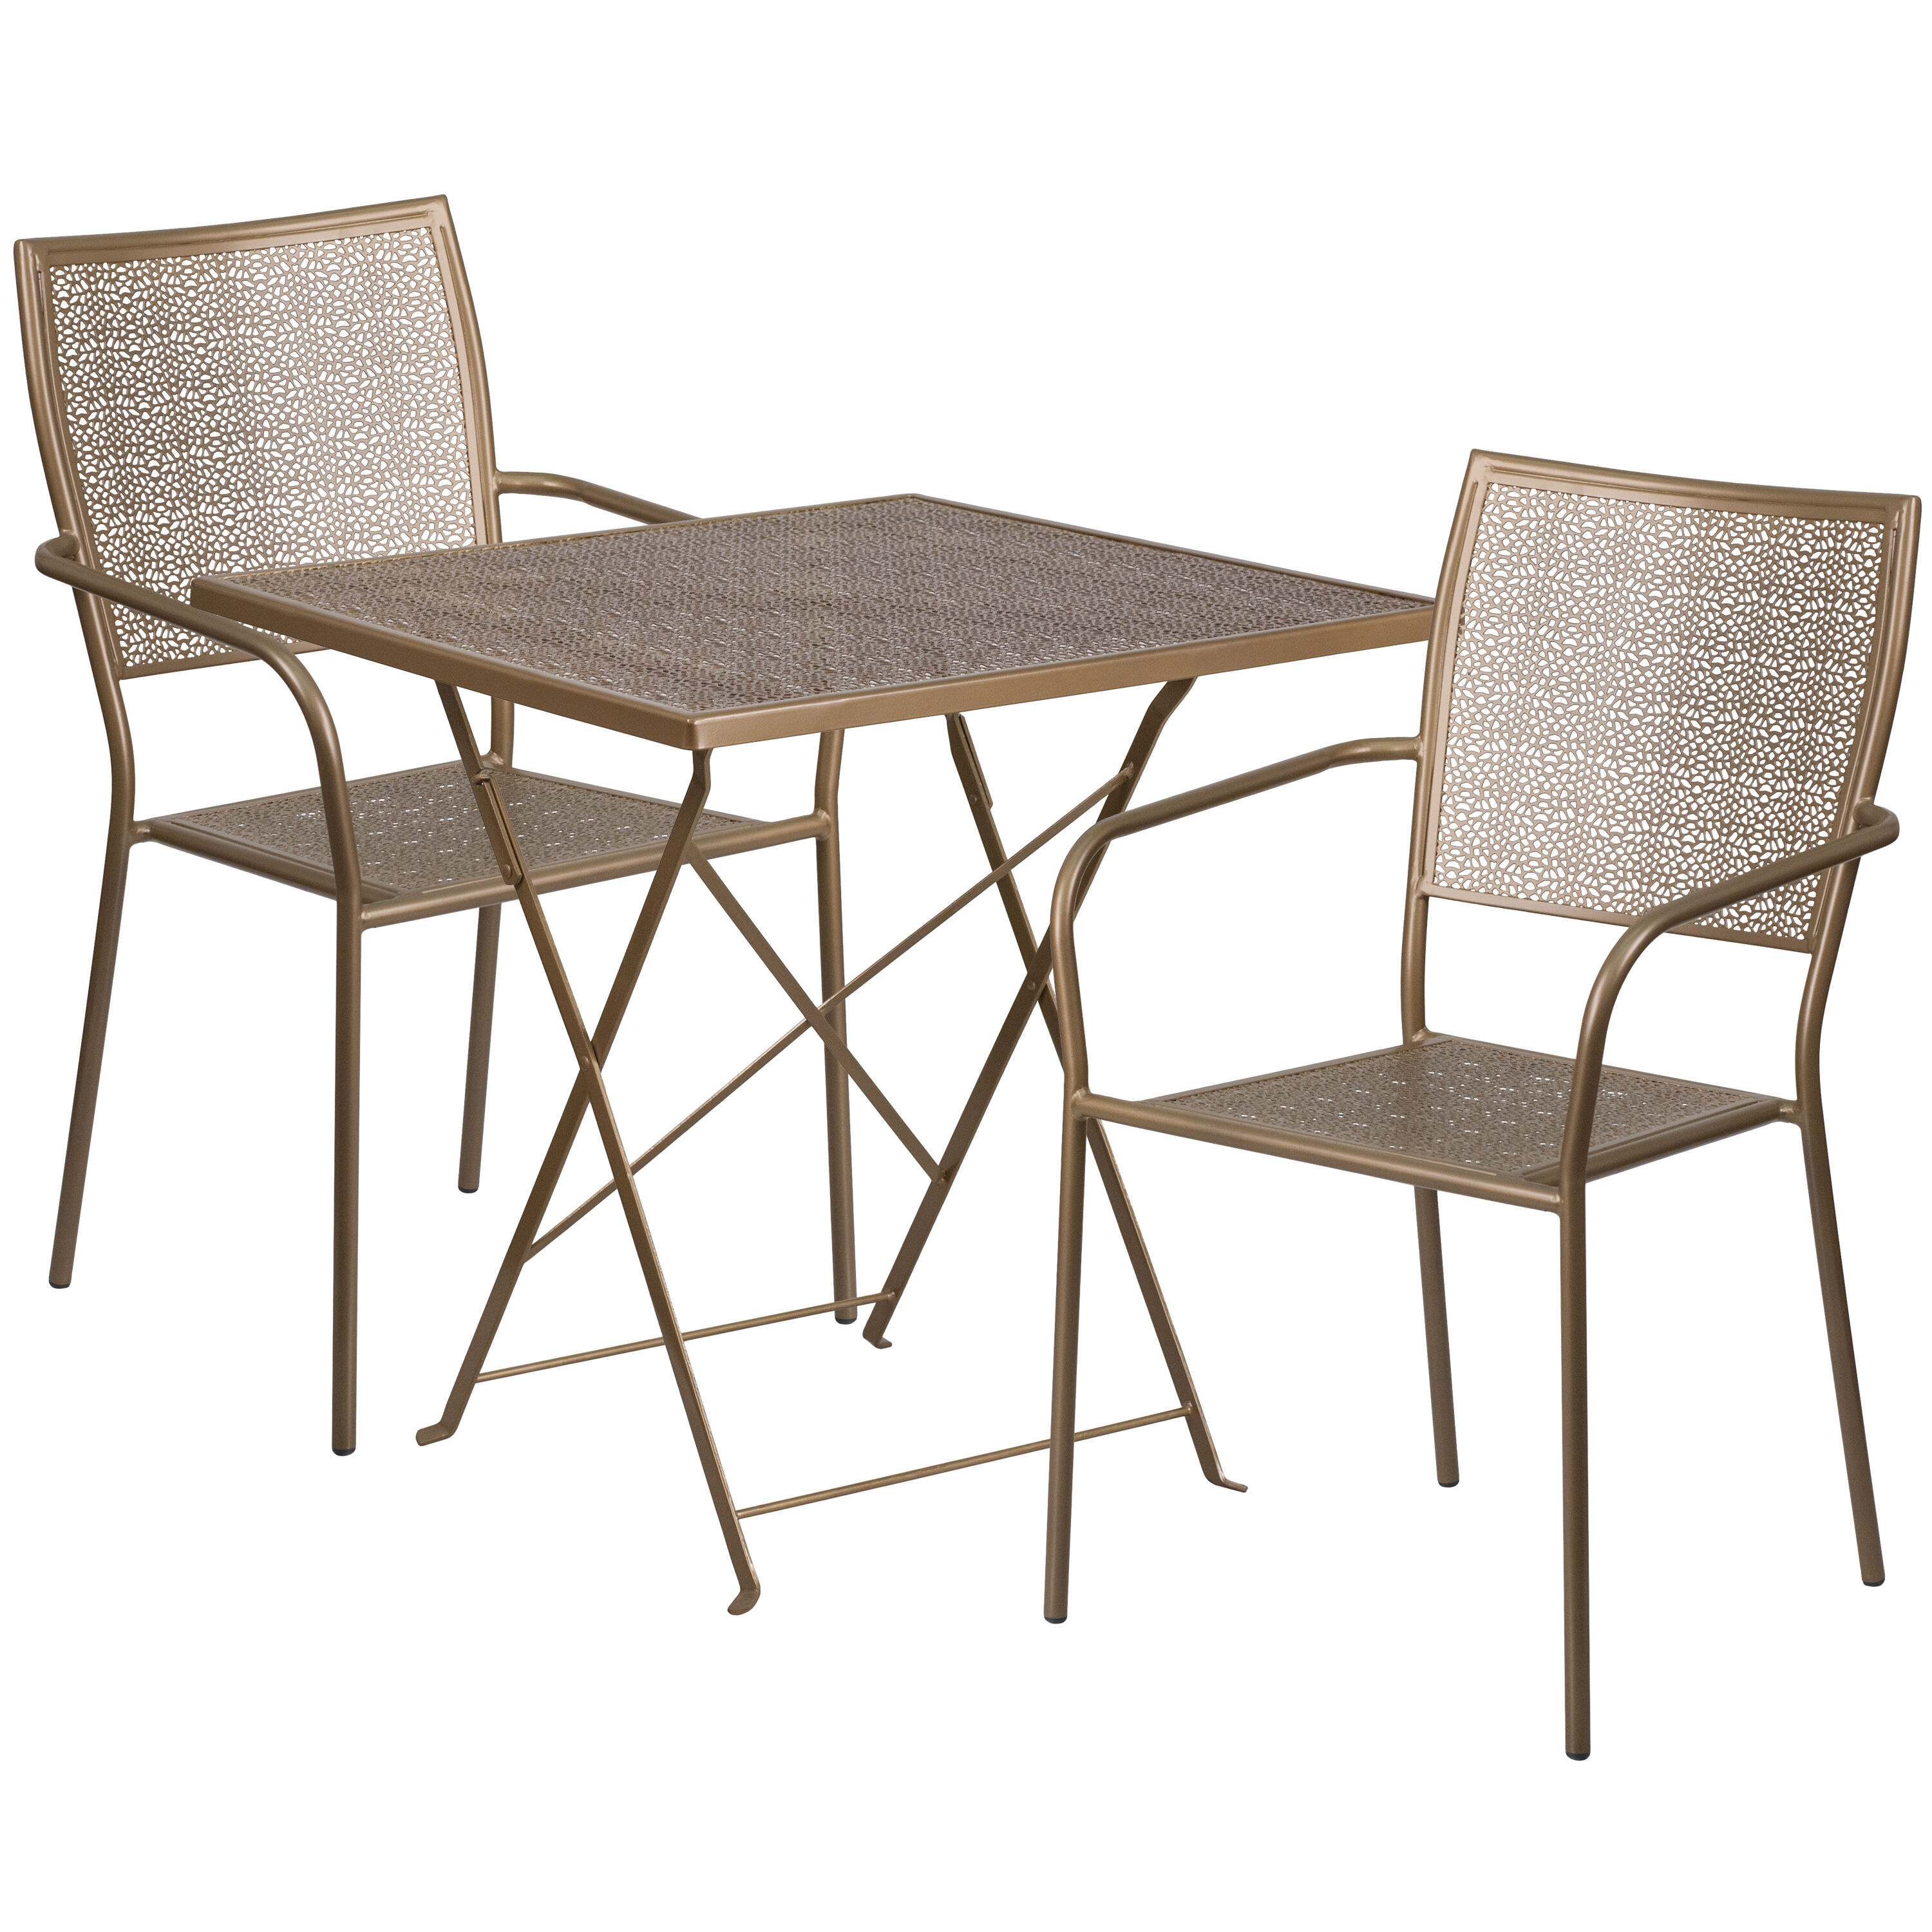 ... Our 28u0027u0027 Square Gold Indoor Outdoor Steel Folding Patio Table Set With 2